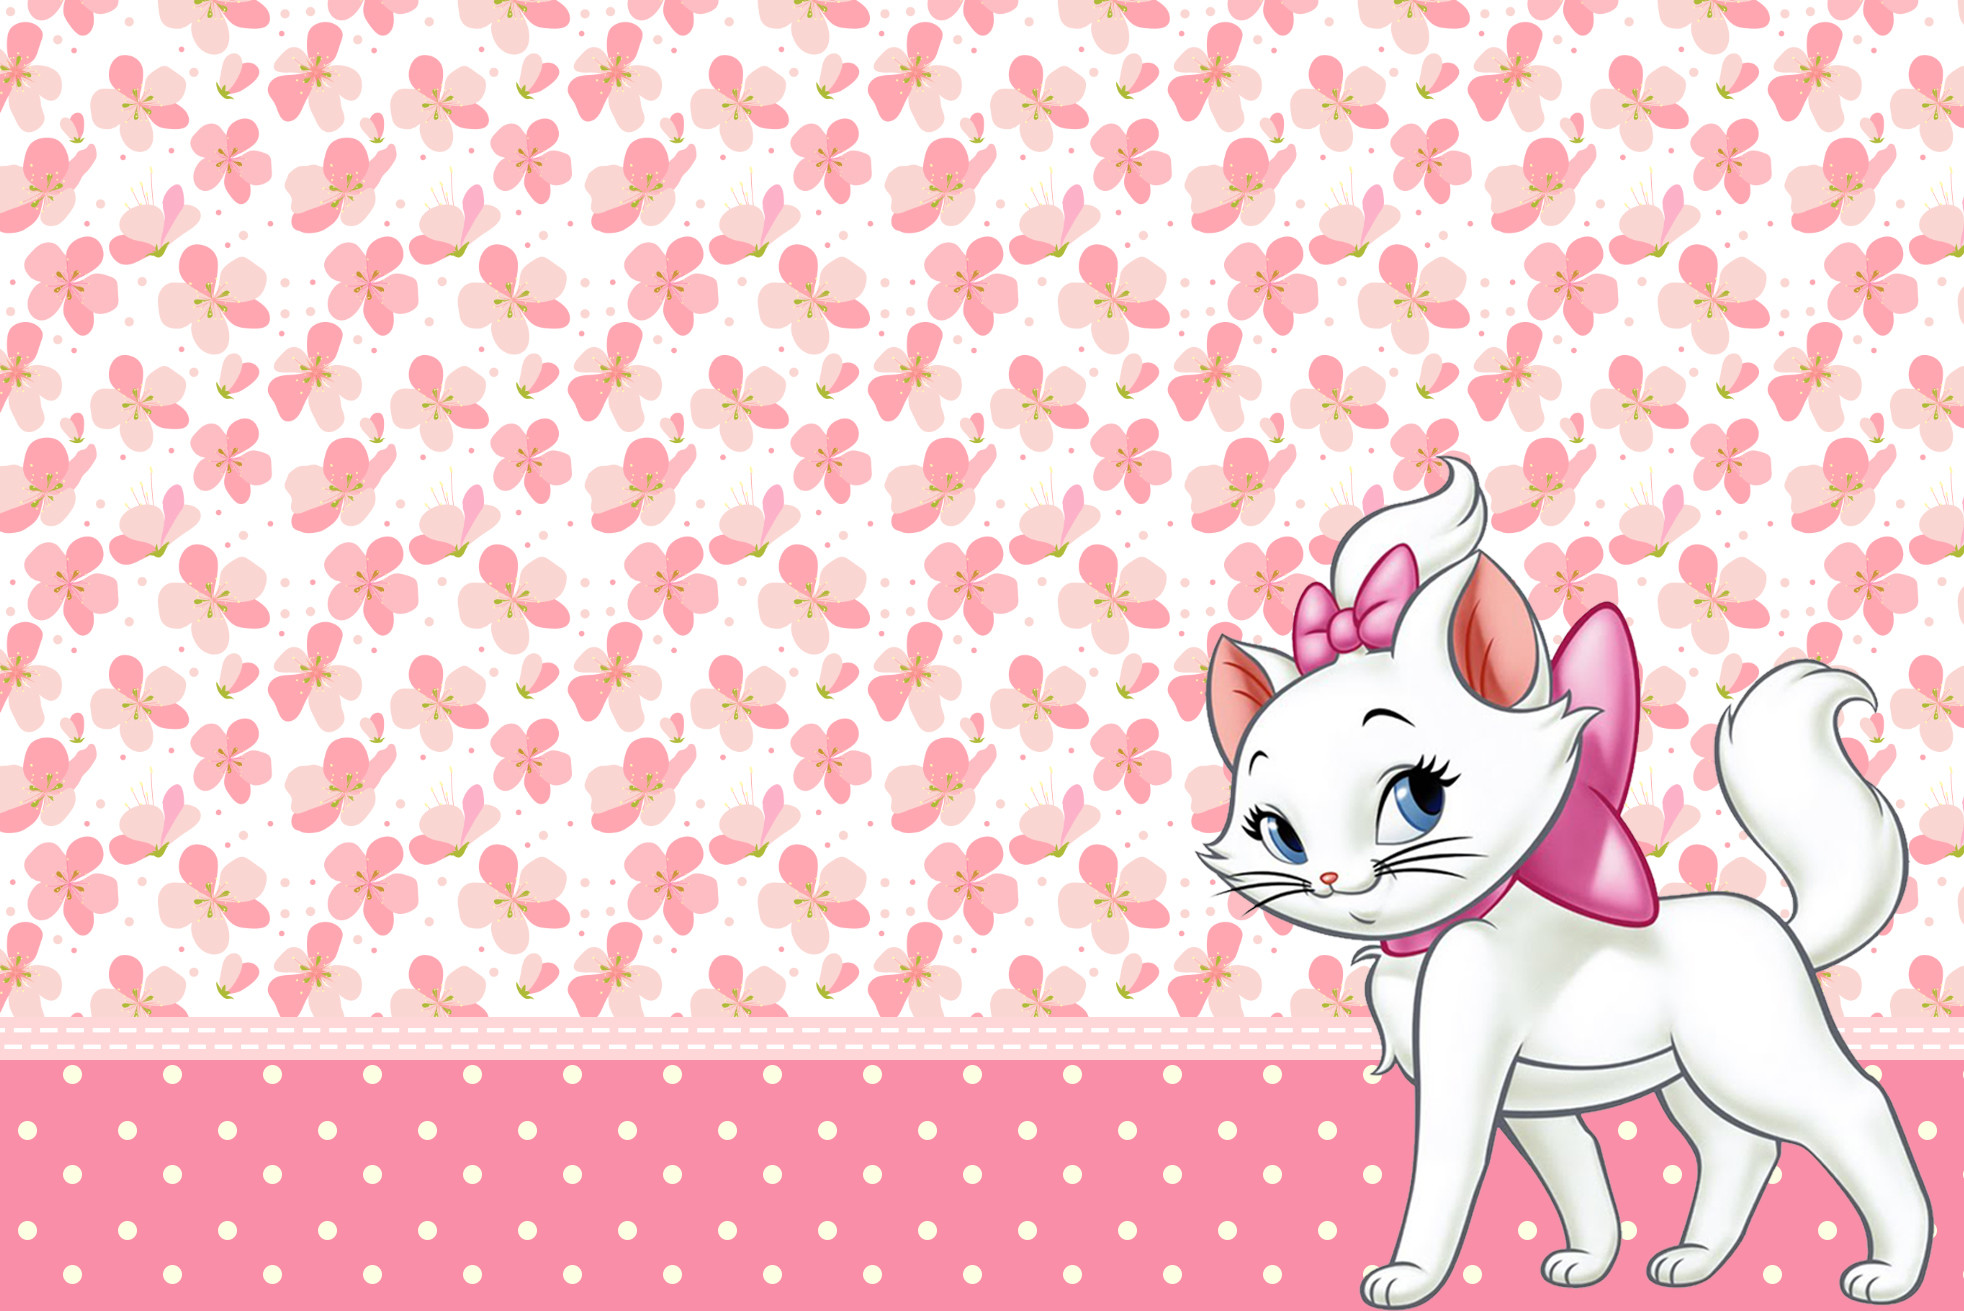 Hd Animated Wallpapers For Mobile Free Download Marie Aristocats Wallpaper 183 ①